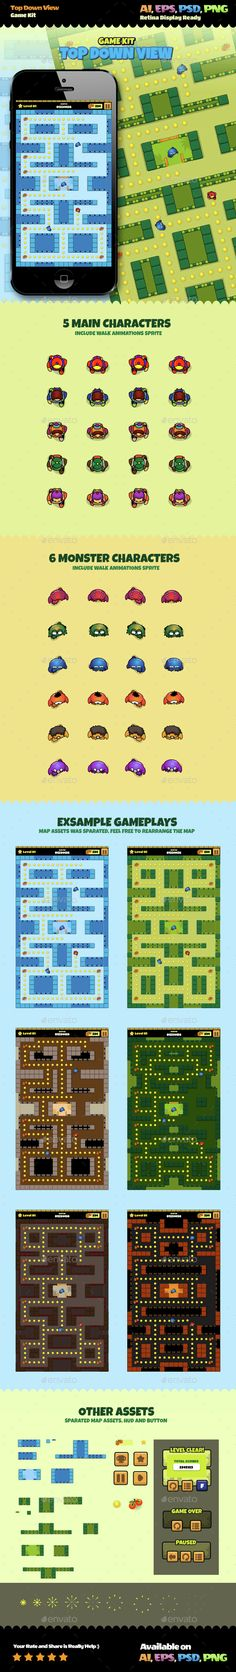 Top Down View Game Kit - Game Kits #Game #Assets | Download http://graphicriver.net/item/top-down-view-game-kit/14811531?ref=sinzo